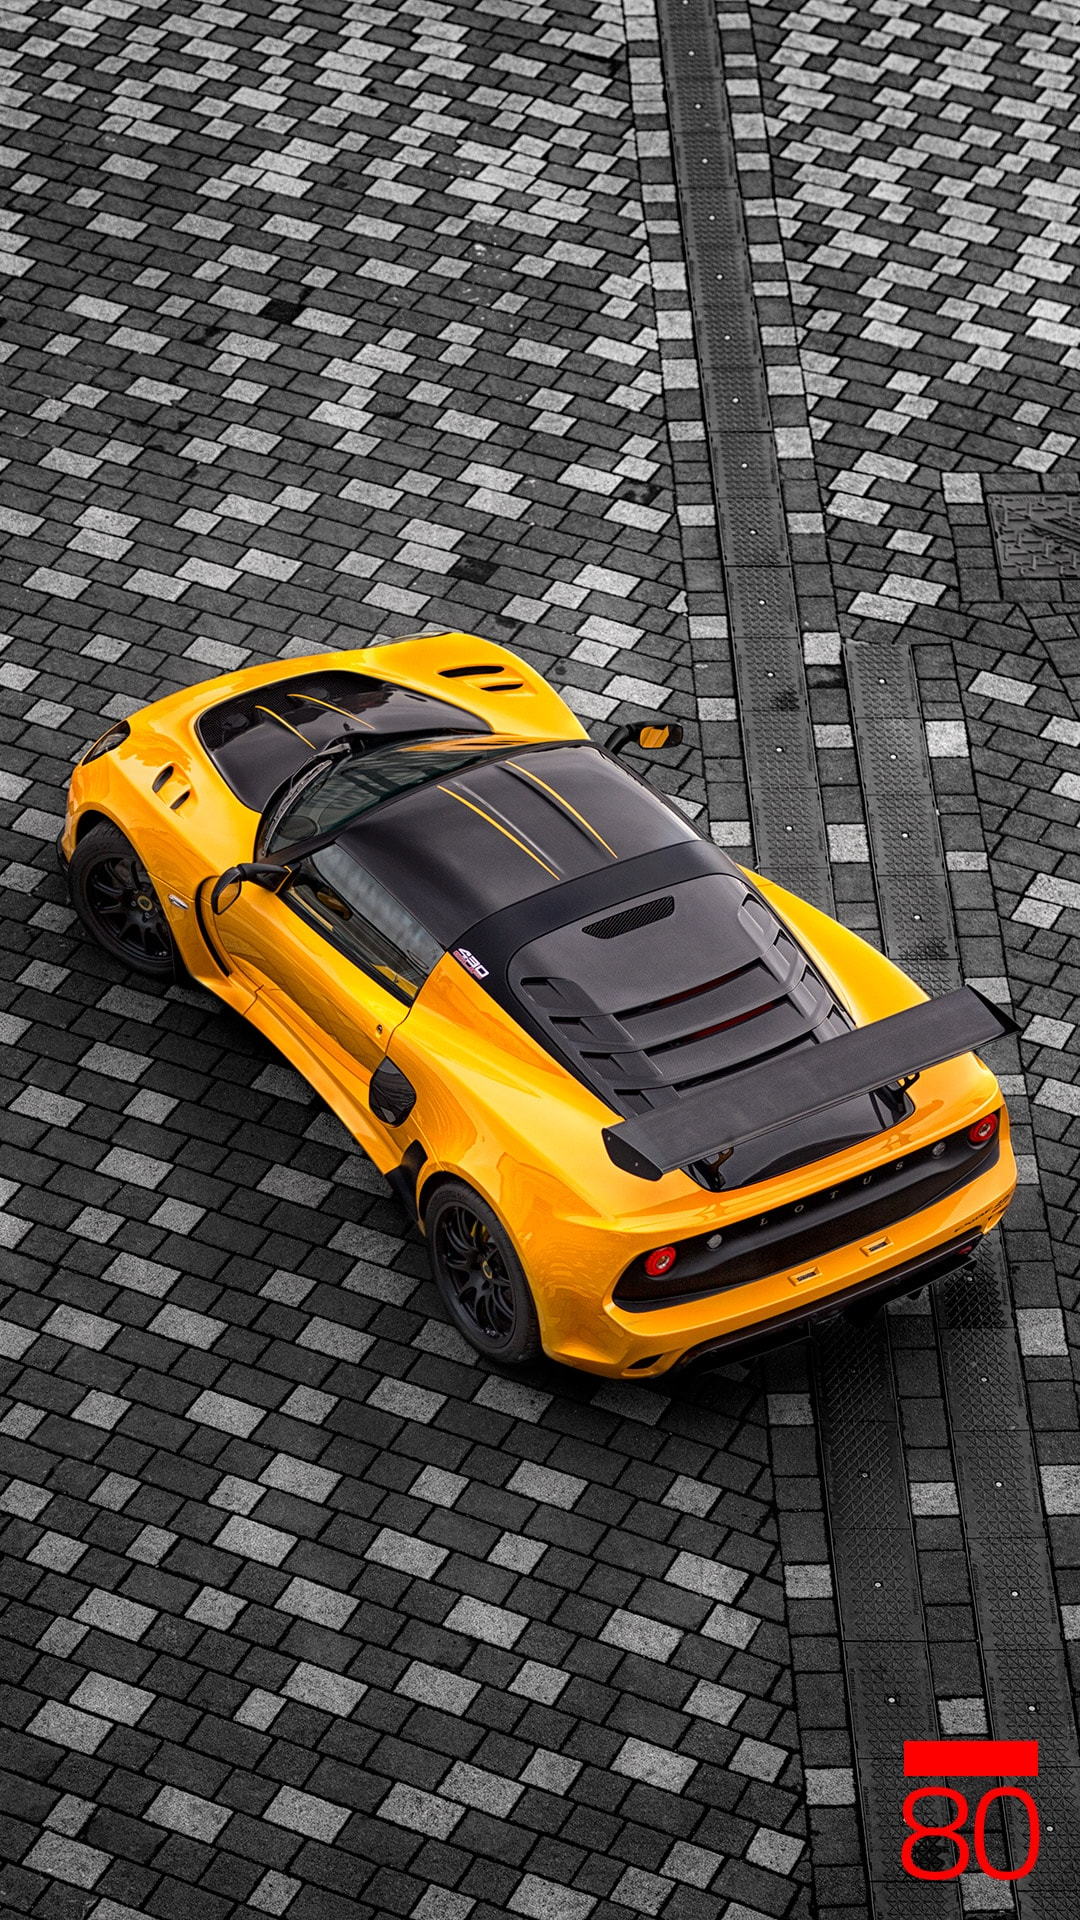 Lotus Exige Cup430 mobile wallpaper